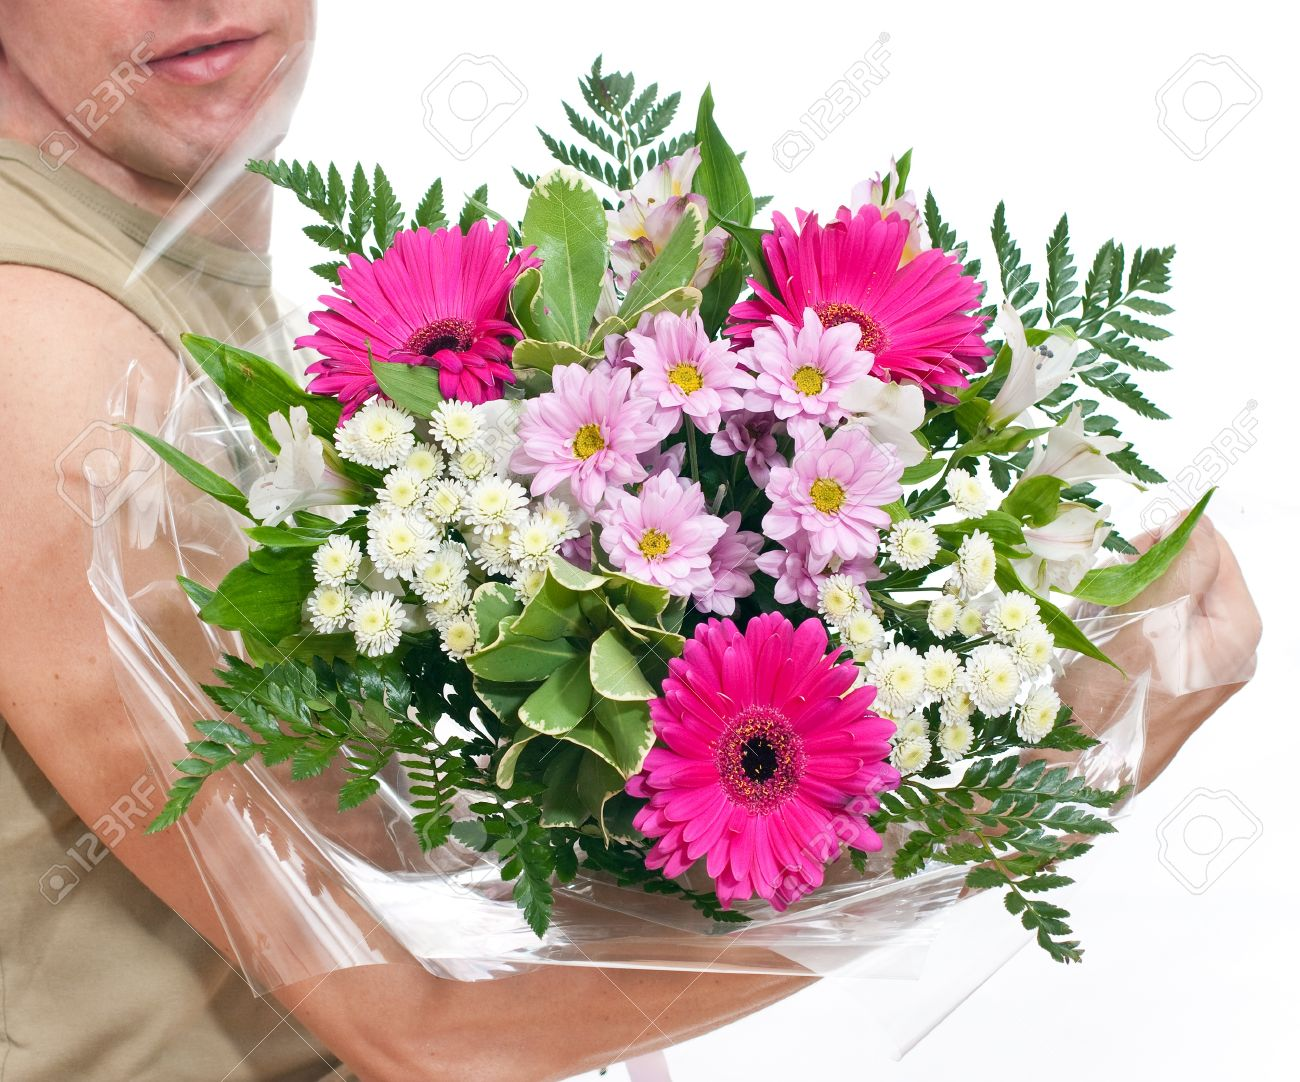 Brawny Man\'s Hand With A Bouquet Of Flowers Stock Photo, Picture And ...